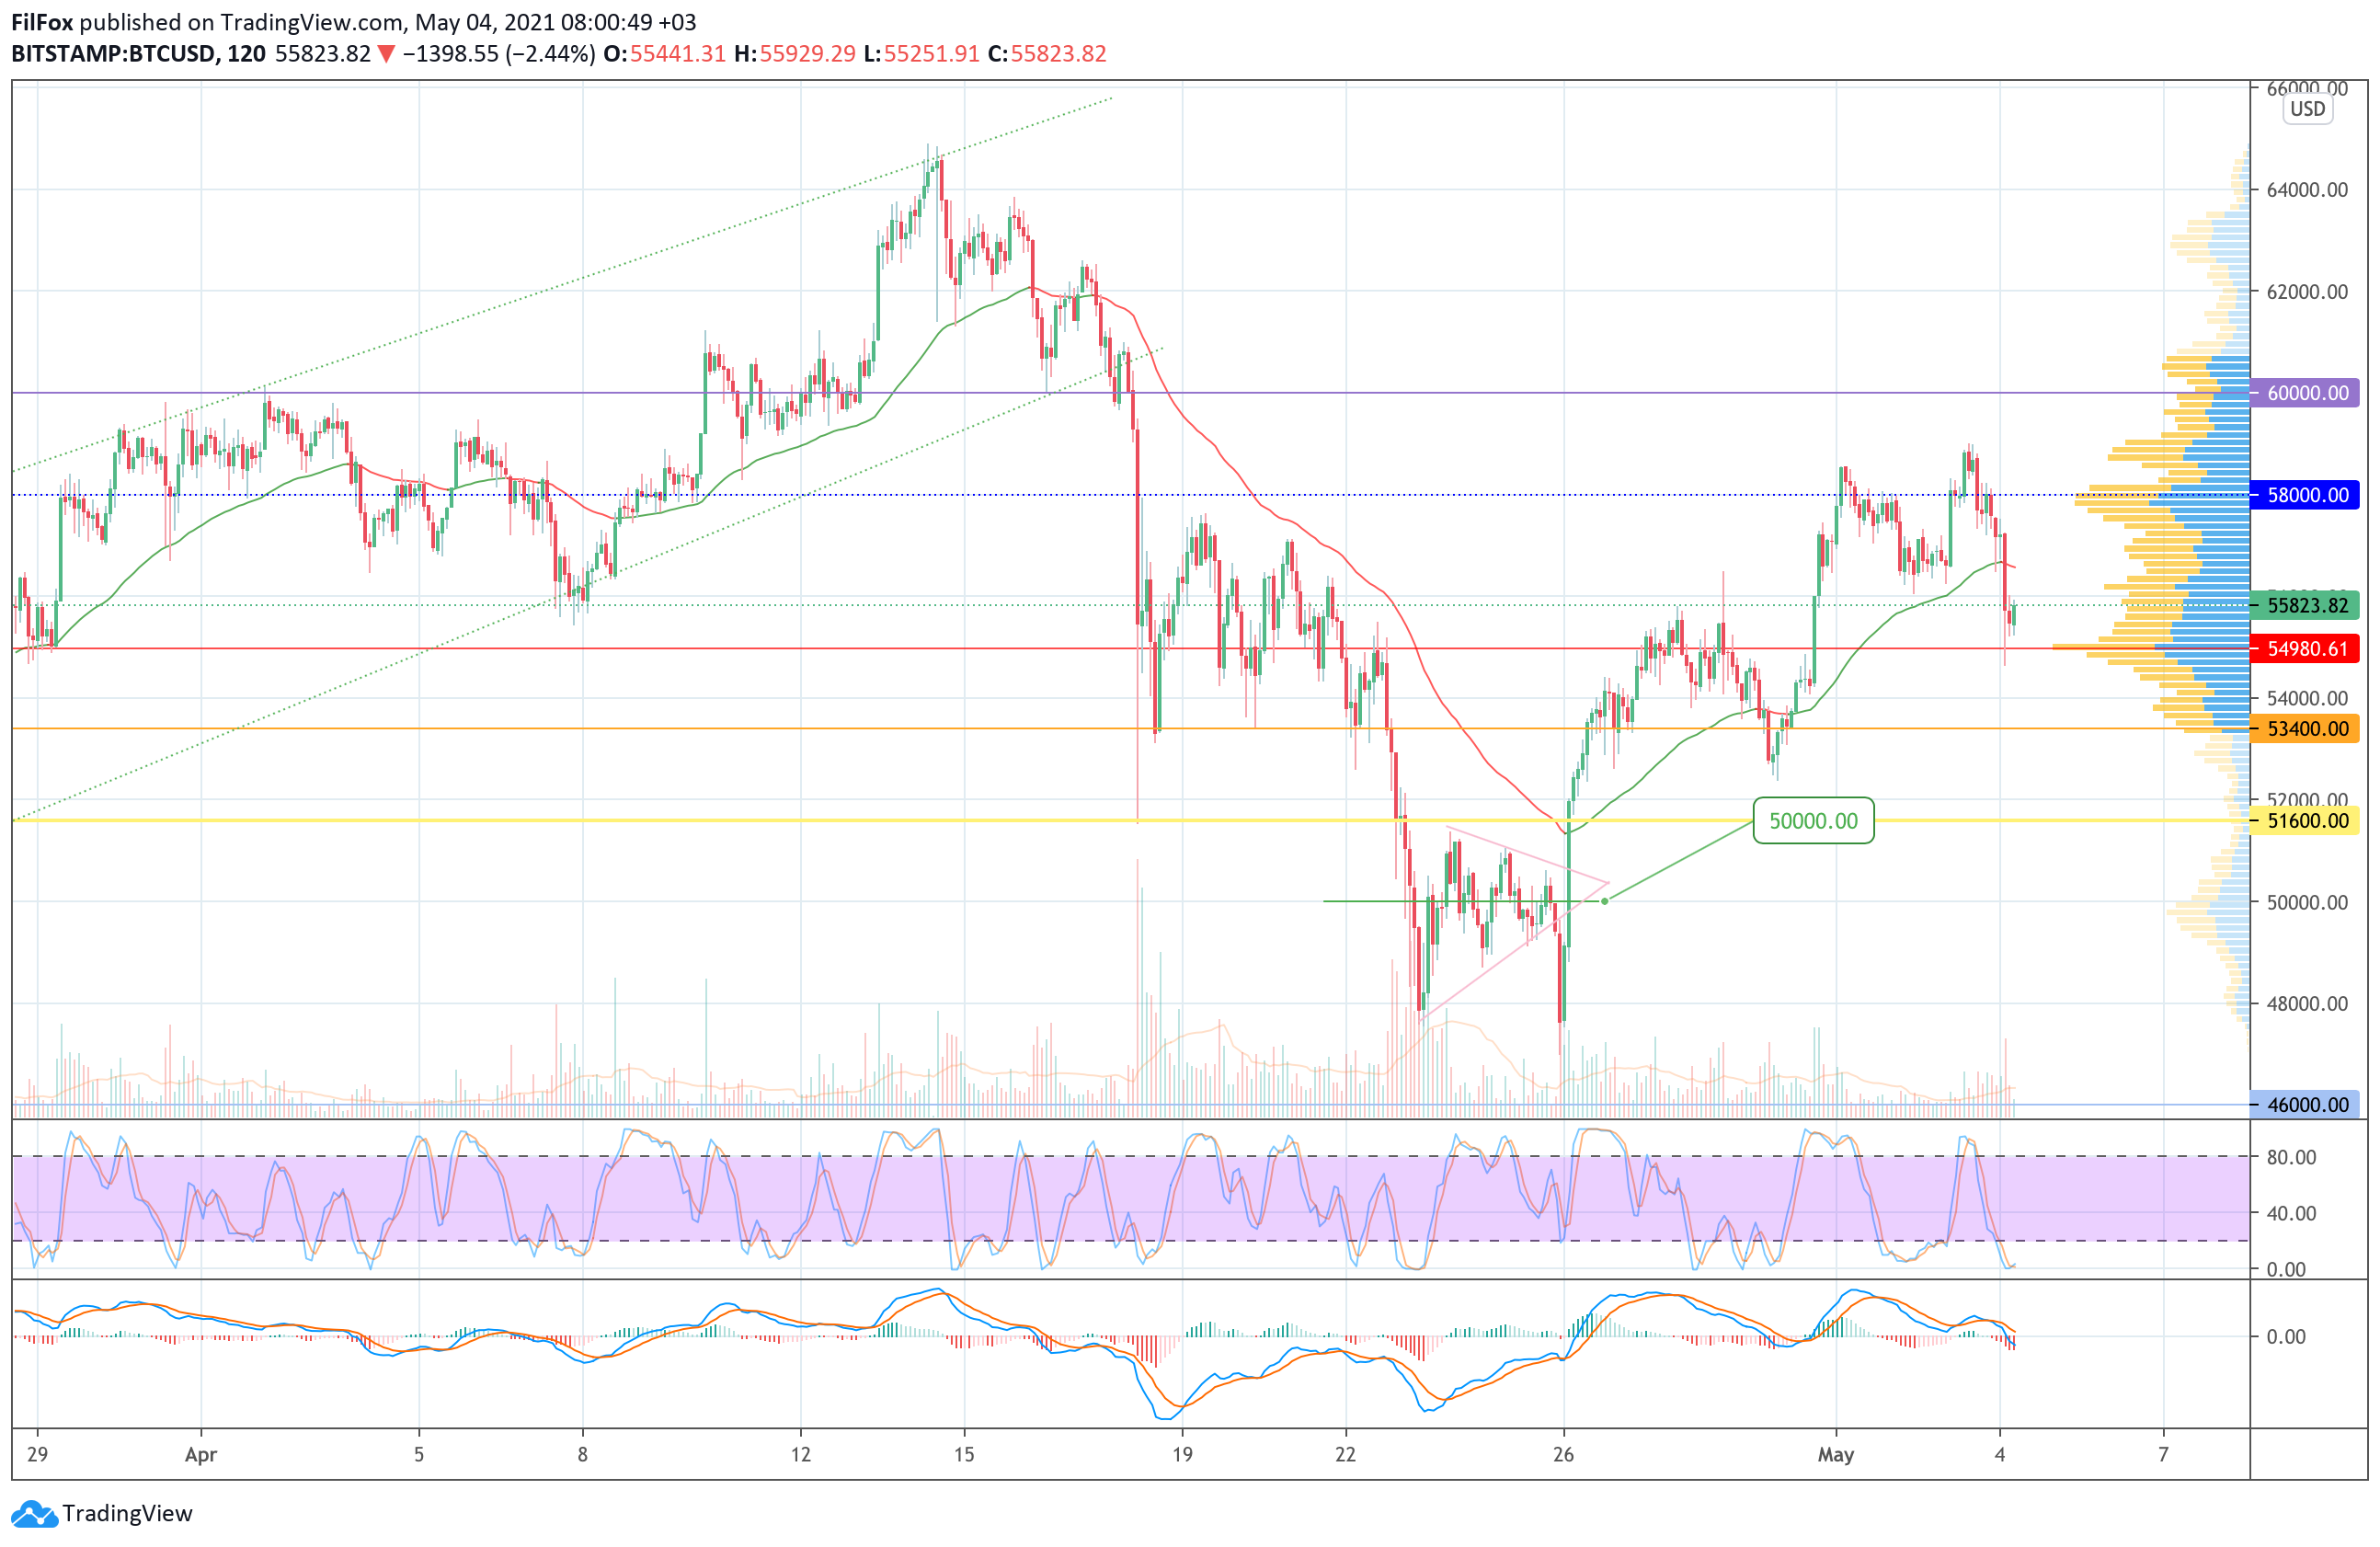 Analysis of the prices of Bitcoin, Ethereum, XRP for 04/05/2021